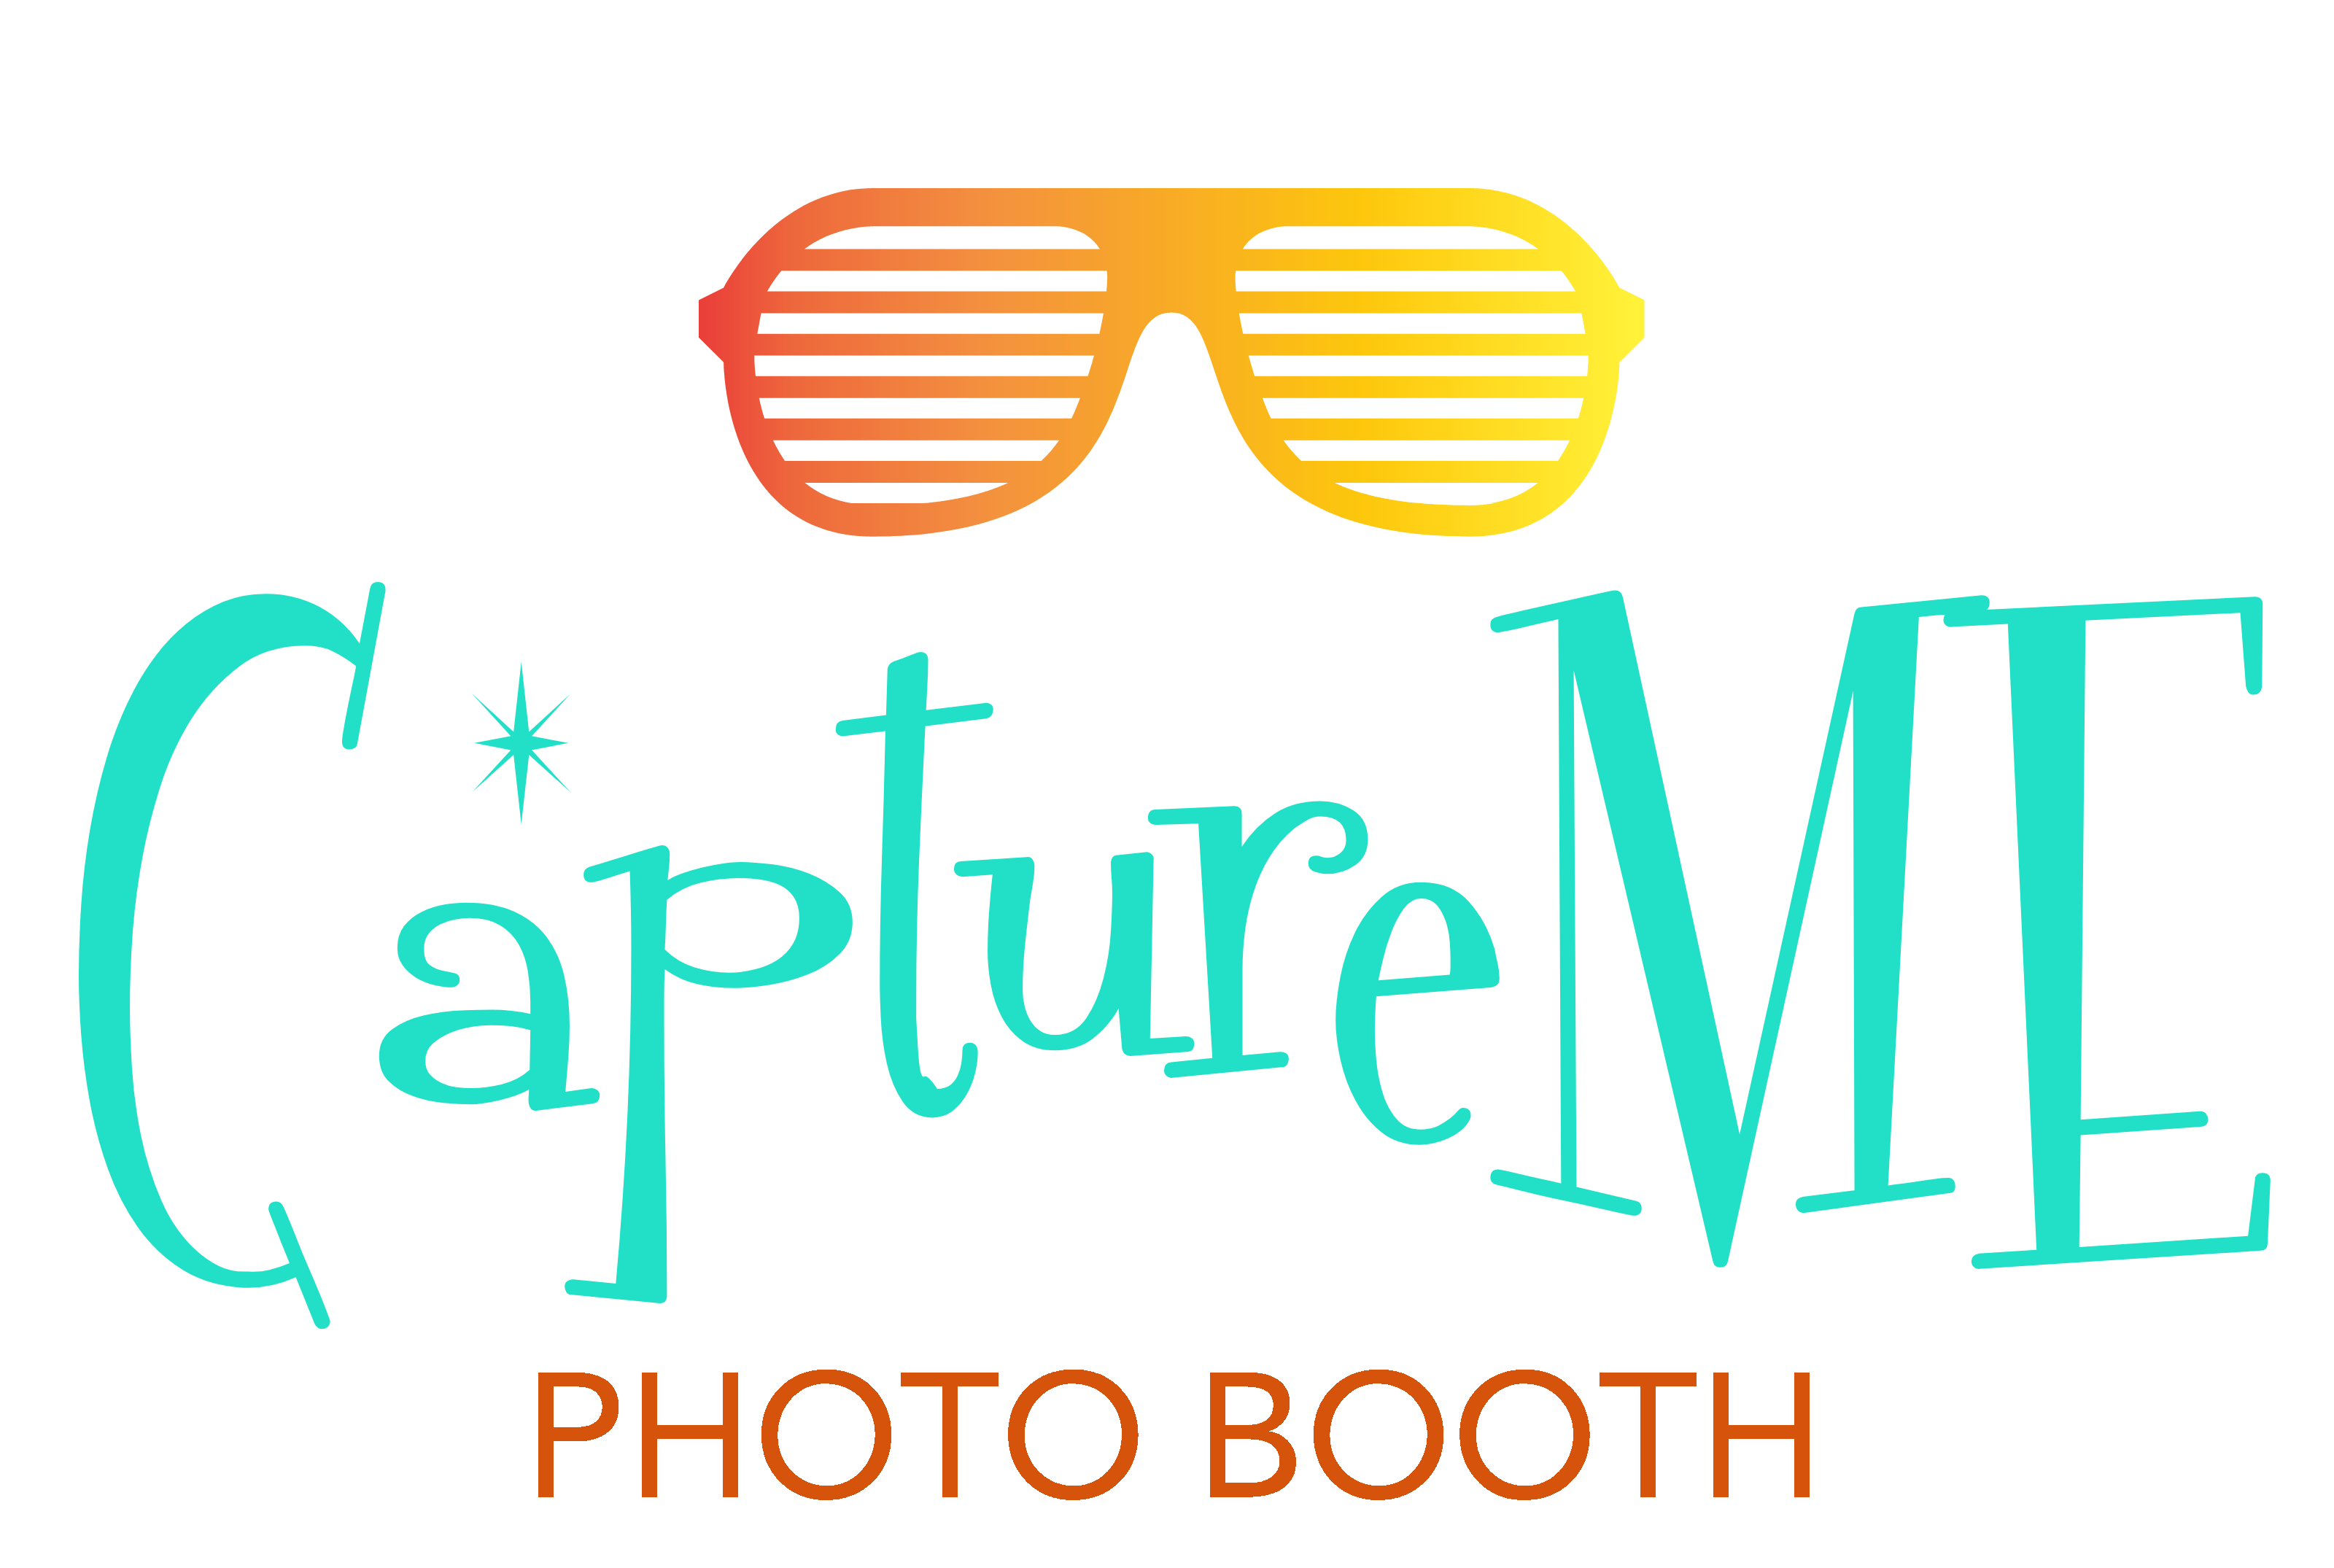 Capture Me Best Photo Booth Rental Fort Collins